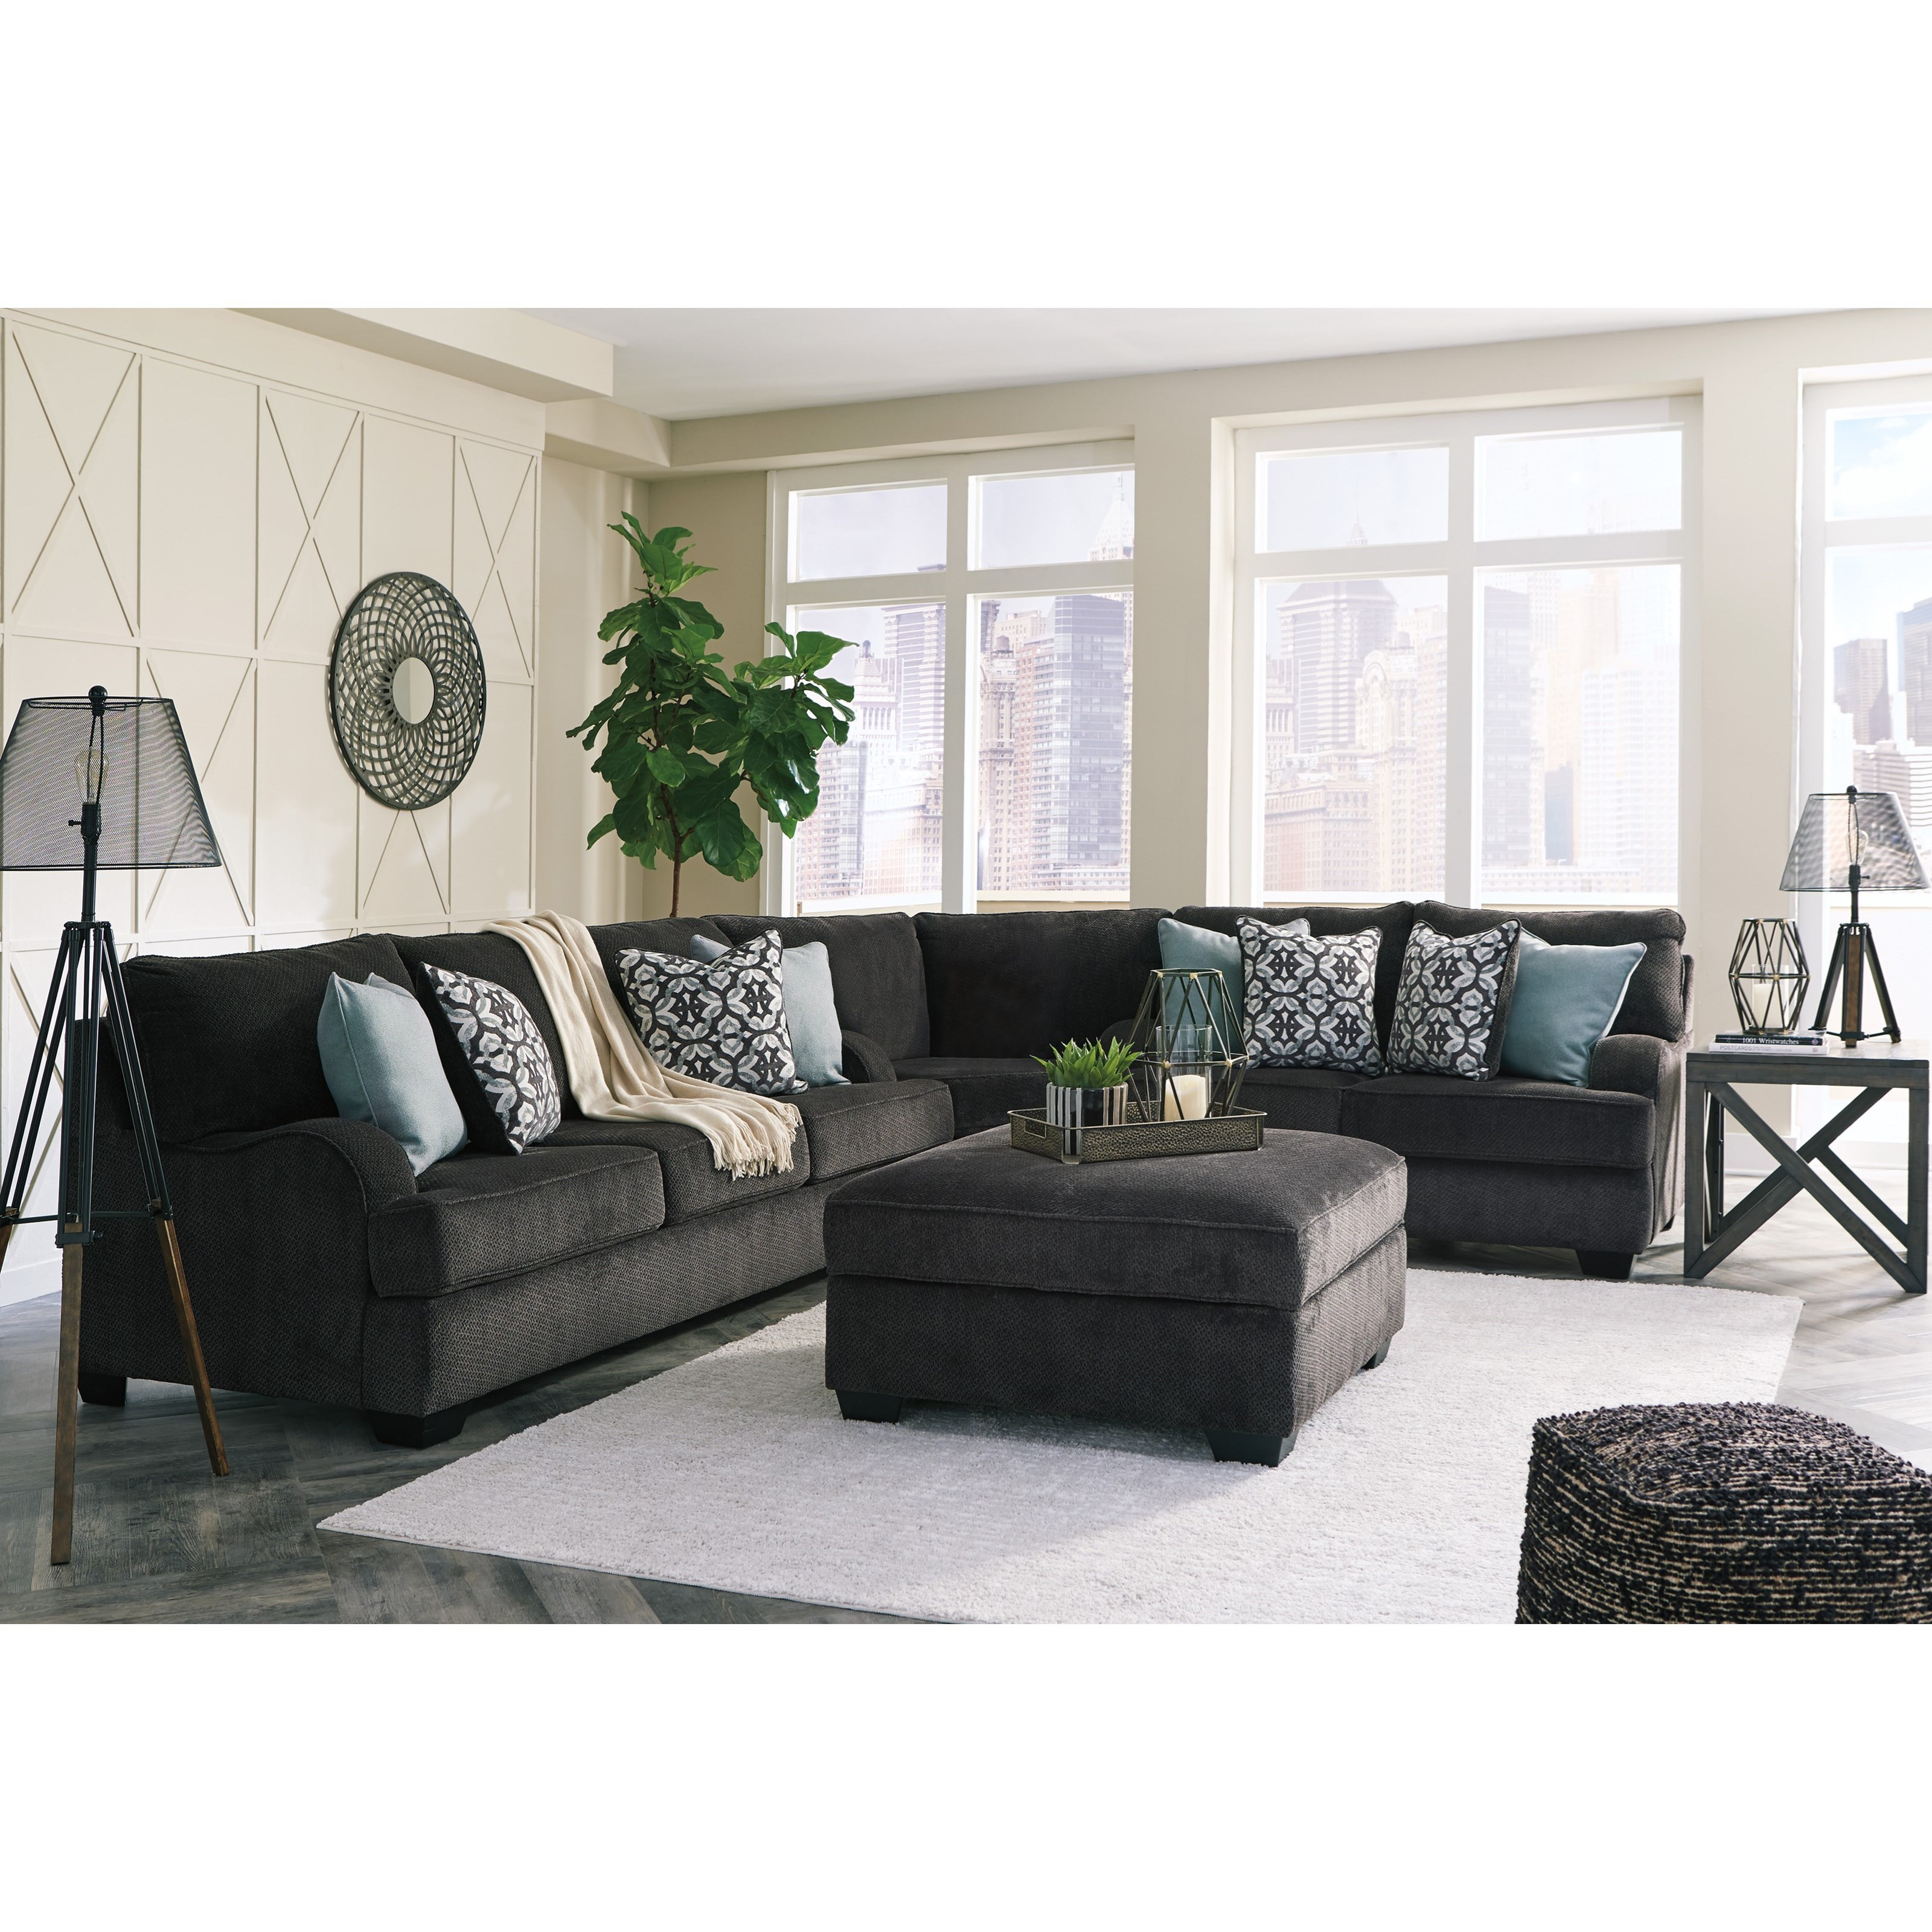 Charenton Stationary Living Room Group by Benchcraft at Standard Furniture